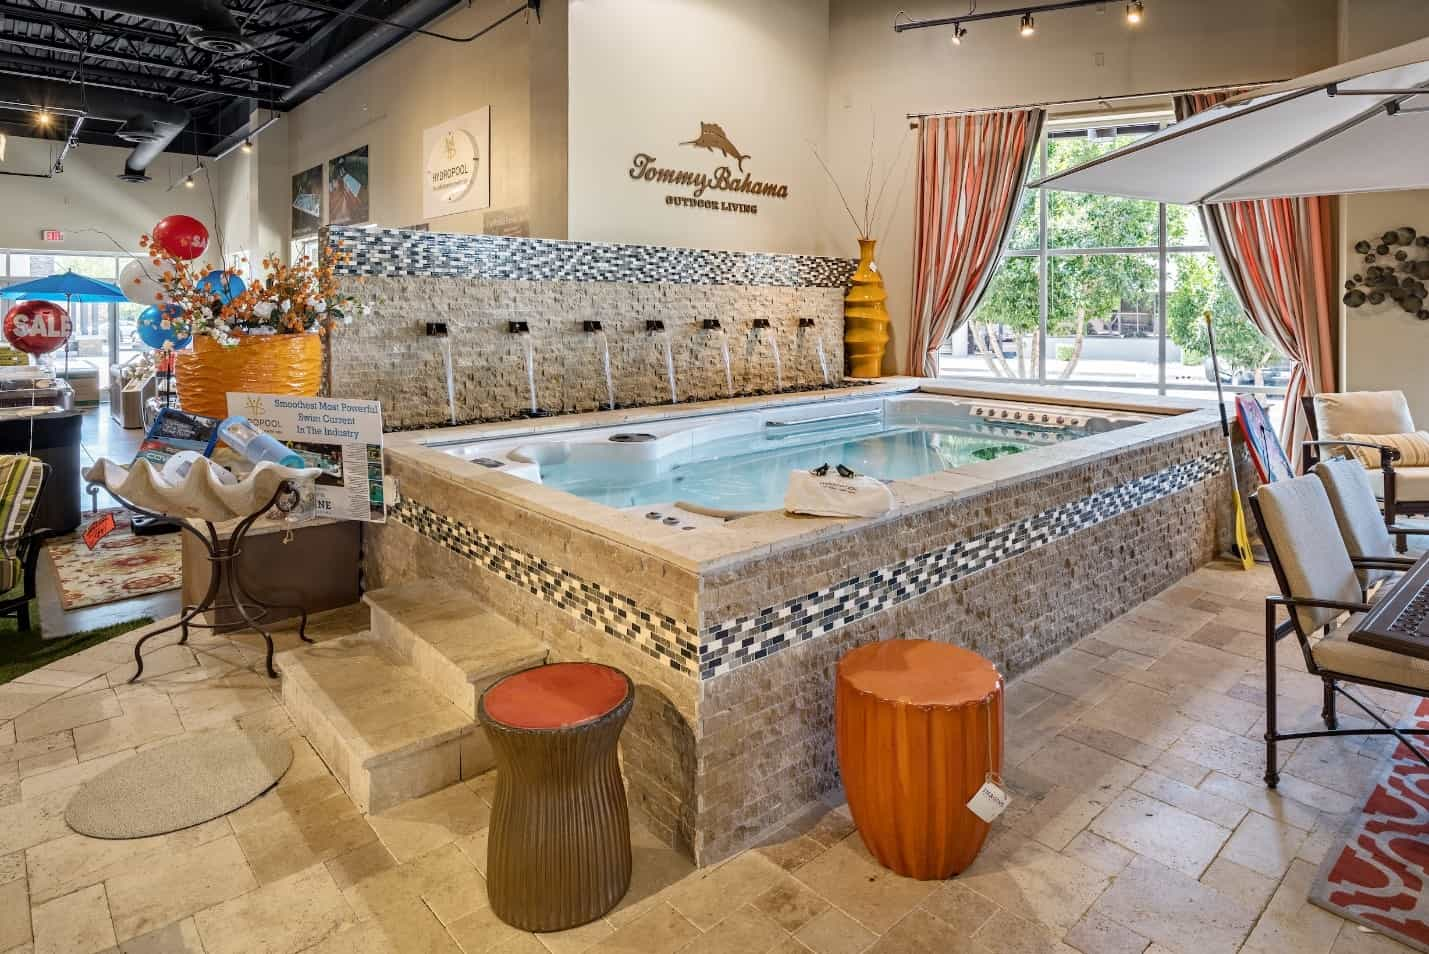 Swim spa at the Imagine Backyard Living showroom